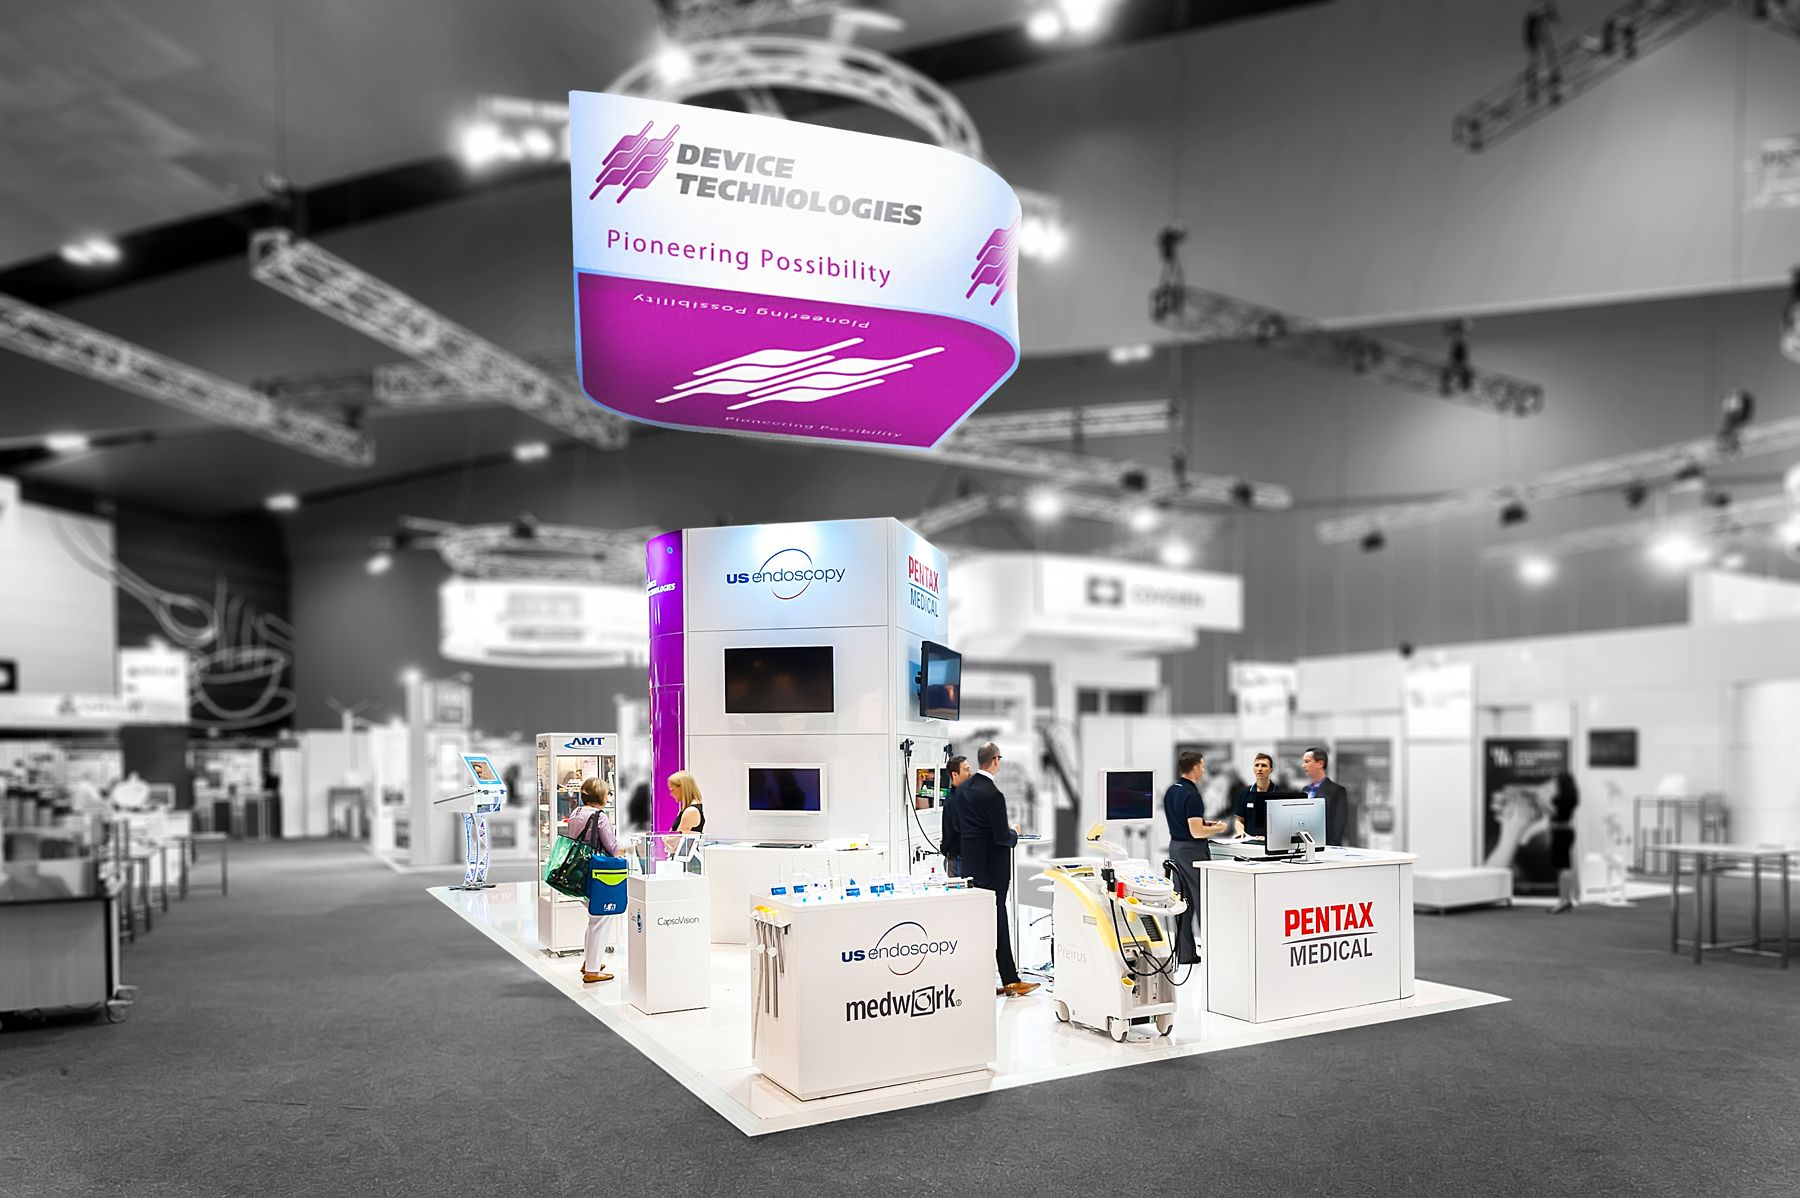 Exhibition Stand Technology : Device technologies exhibition stand designed and